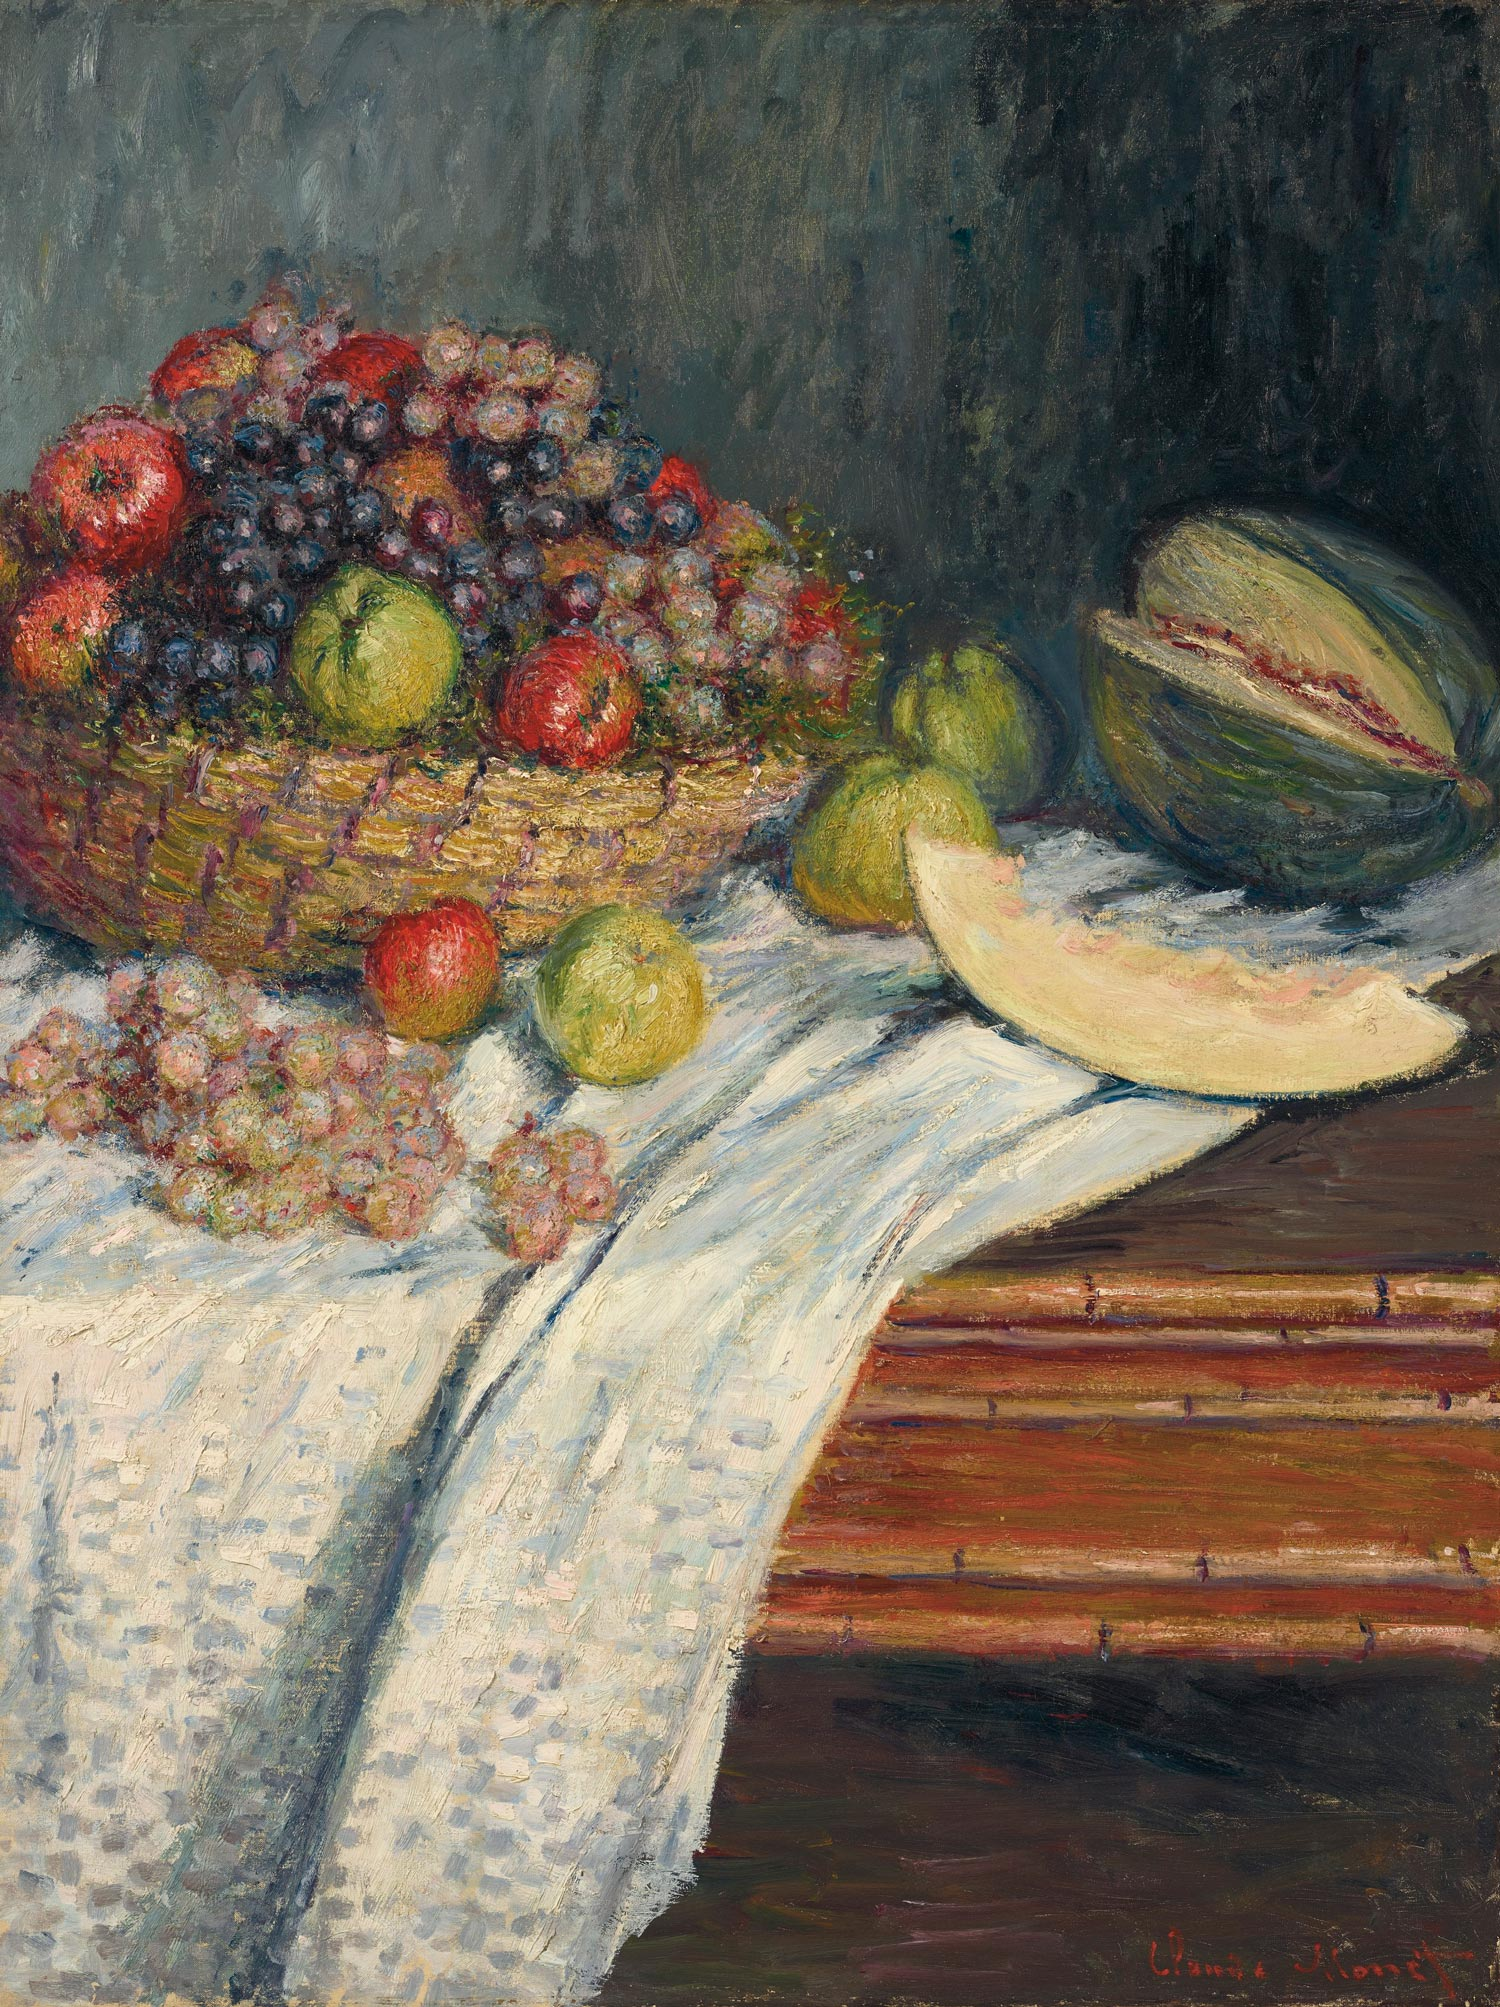 Claude Monet (1840-1926), Nature morte au melon d'Espagne, 1879. Oil on canvas. 35 ½ x 26 ¾ in. Estimate $2,000,000-4,000,000. Offered in the Impressionist and Modern Art Evening Sale on 13 May at Christie's New York. Property from the Collection of Frederick A. and Sharon L. Klingenstein